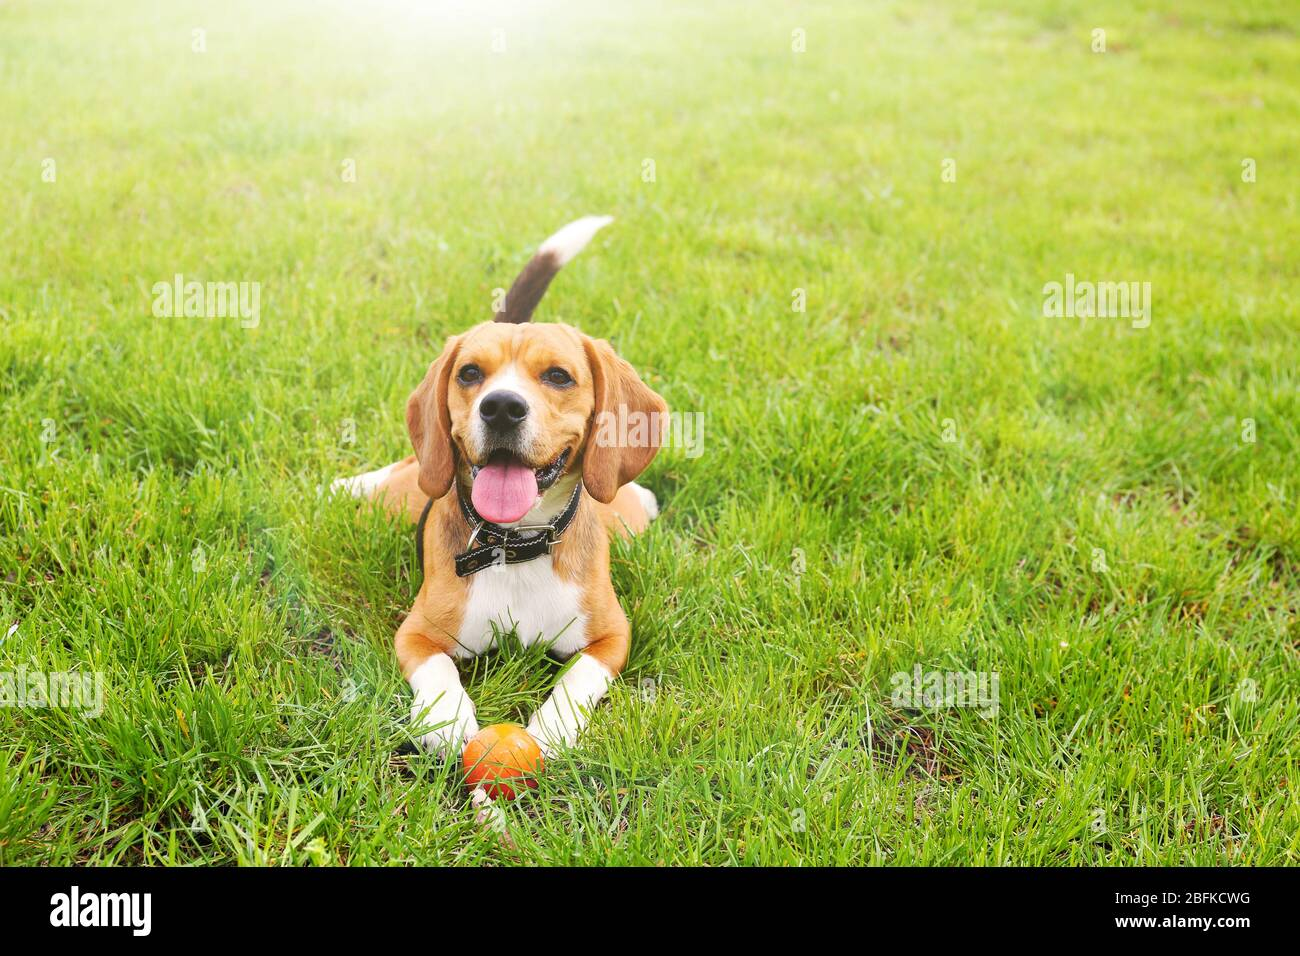 Funny Cute Beagle Dog In Park On Green Grass Stock Photo Alamy